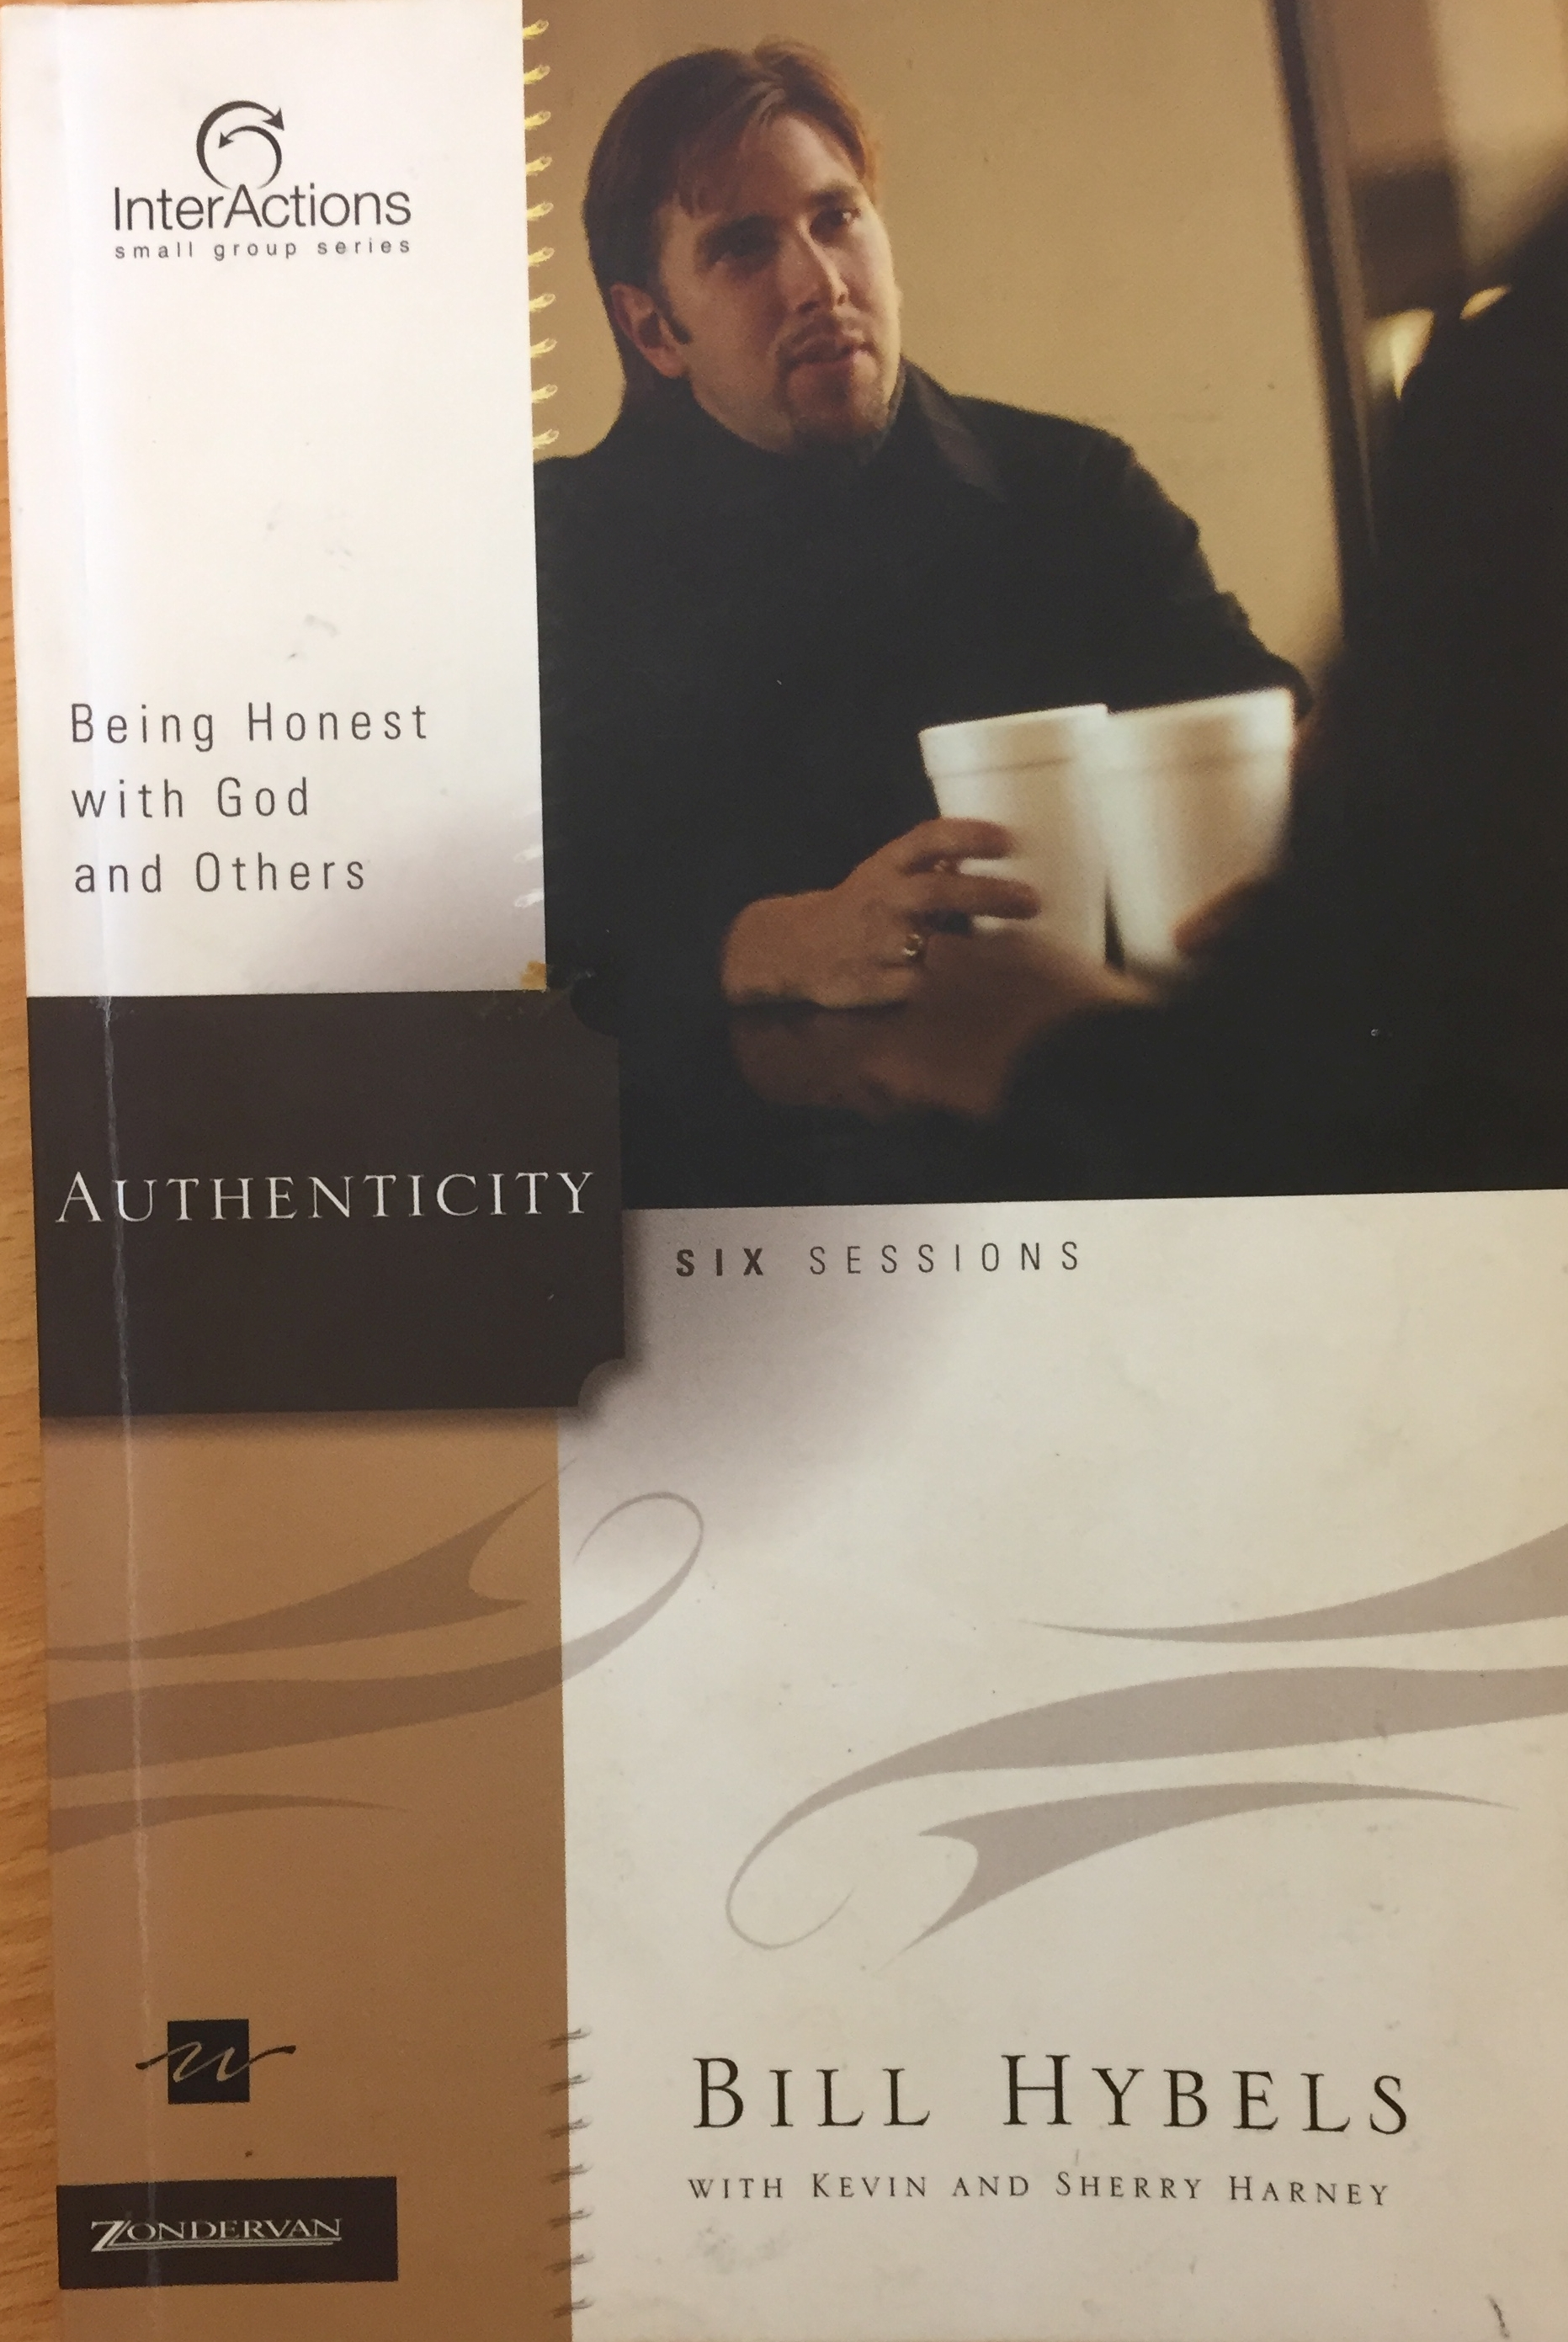 Authenticity - Being honest with God and others